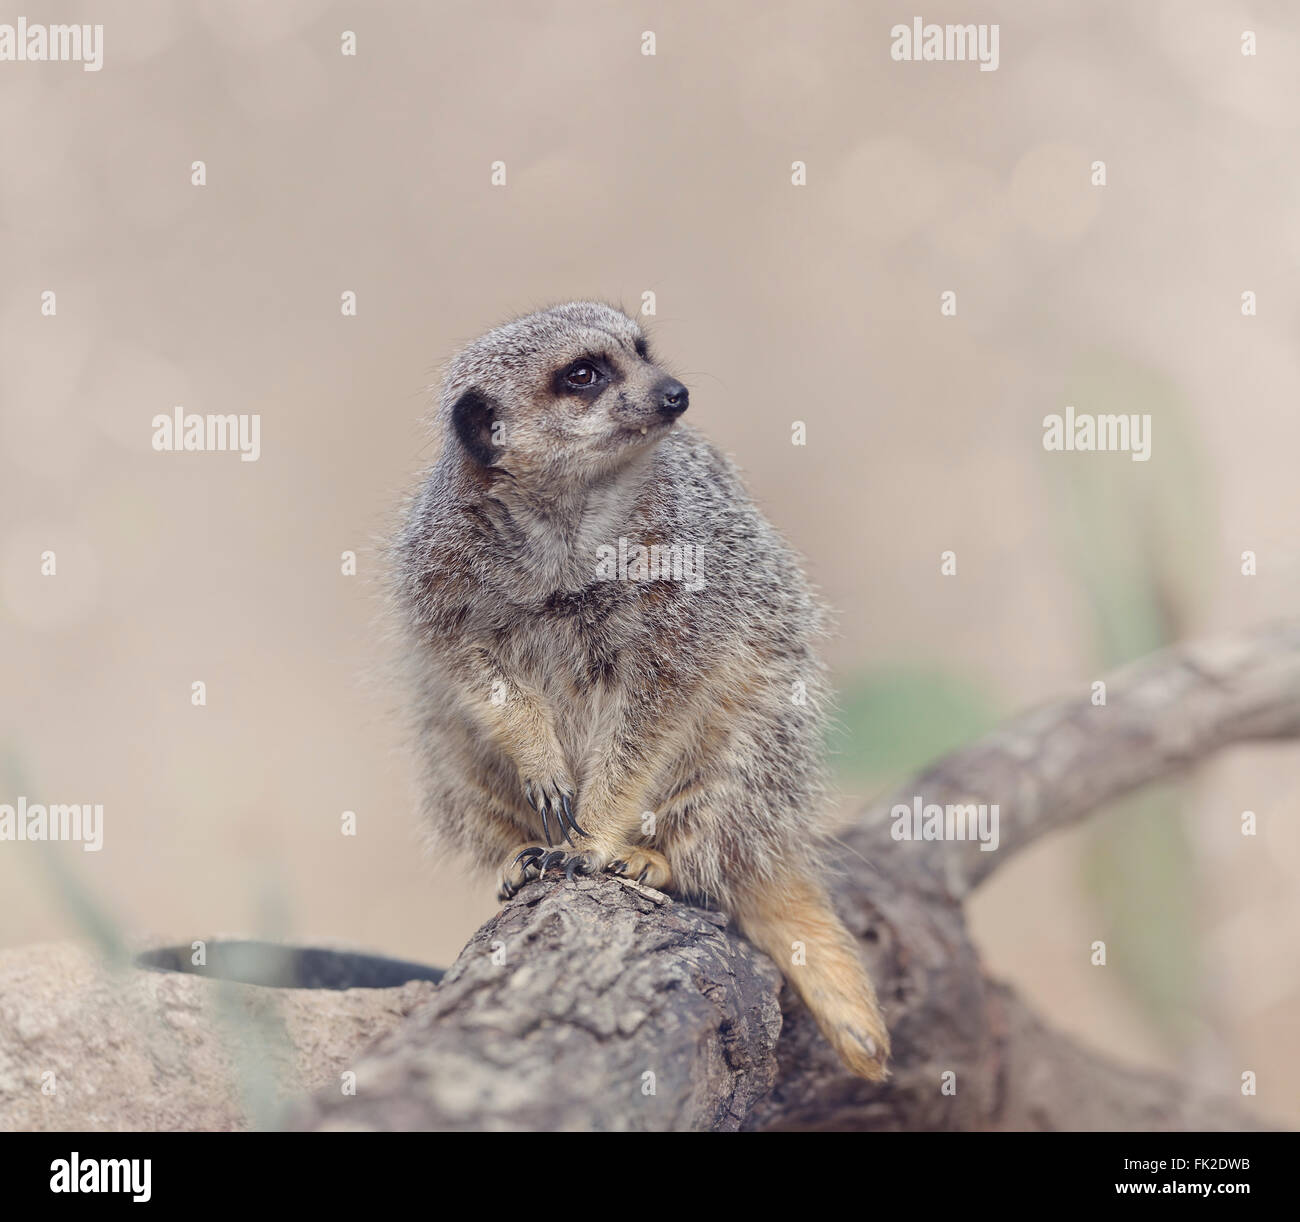 Meerkat Sitting on a Branch - Stock Image